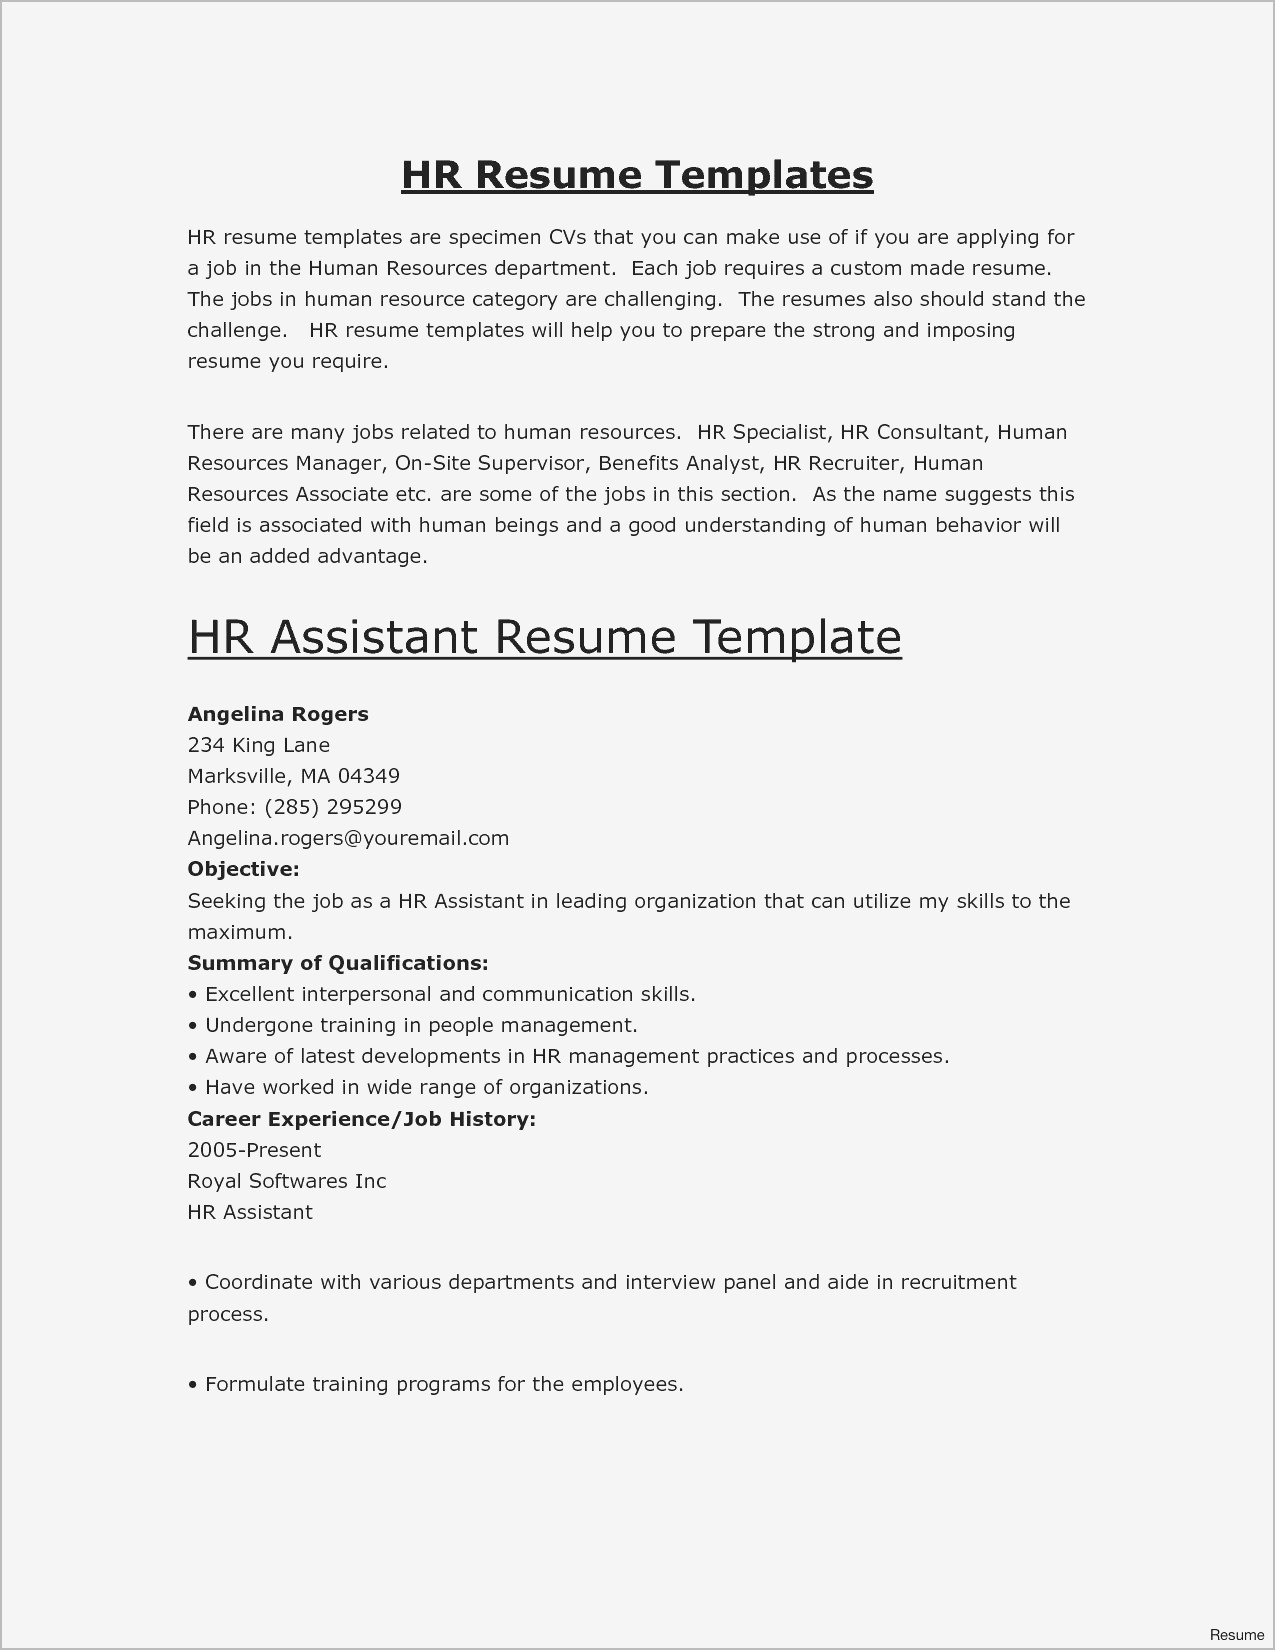 cvs sales resume example-How to Type Resume Luxury Sample Sales Resumes Awesome Awesome How Can I Do A Resume 3-c